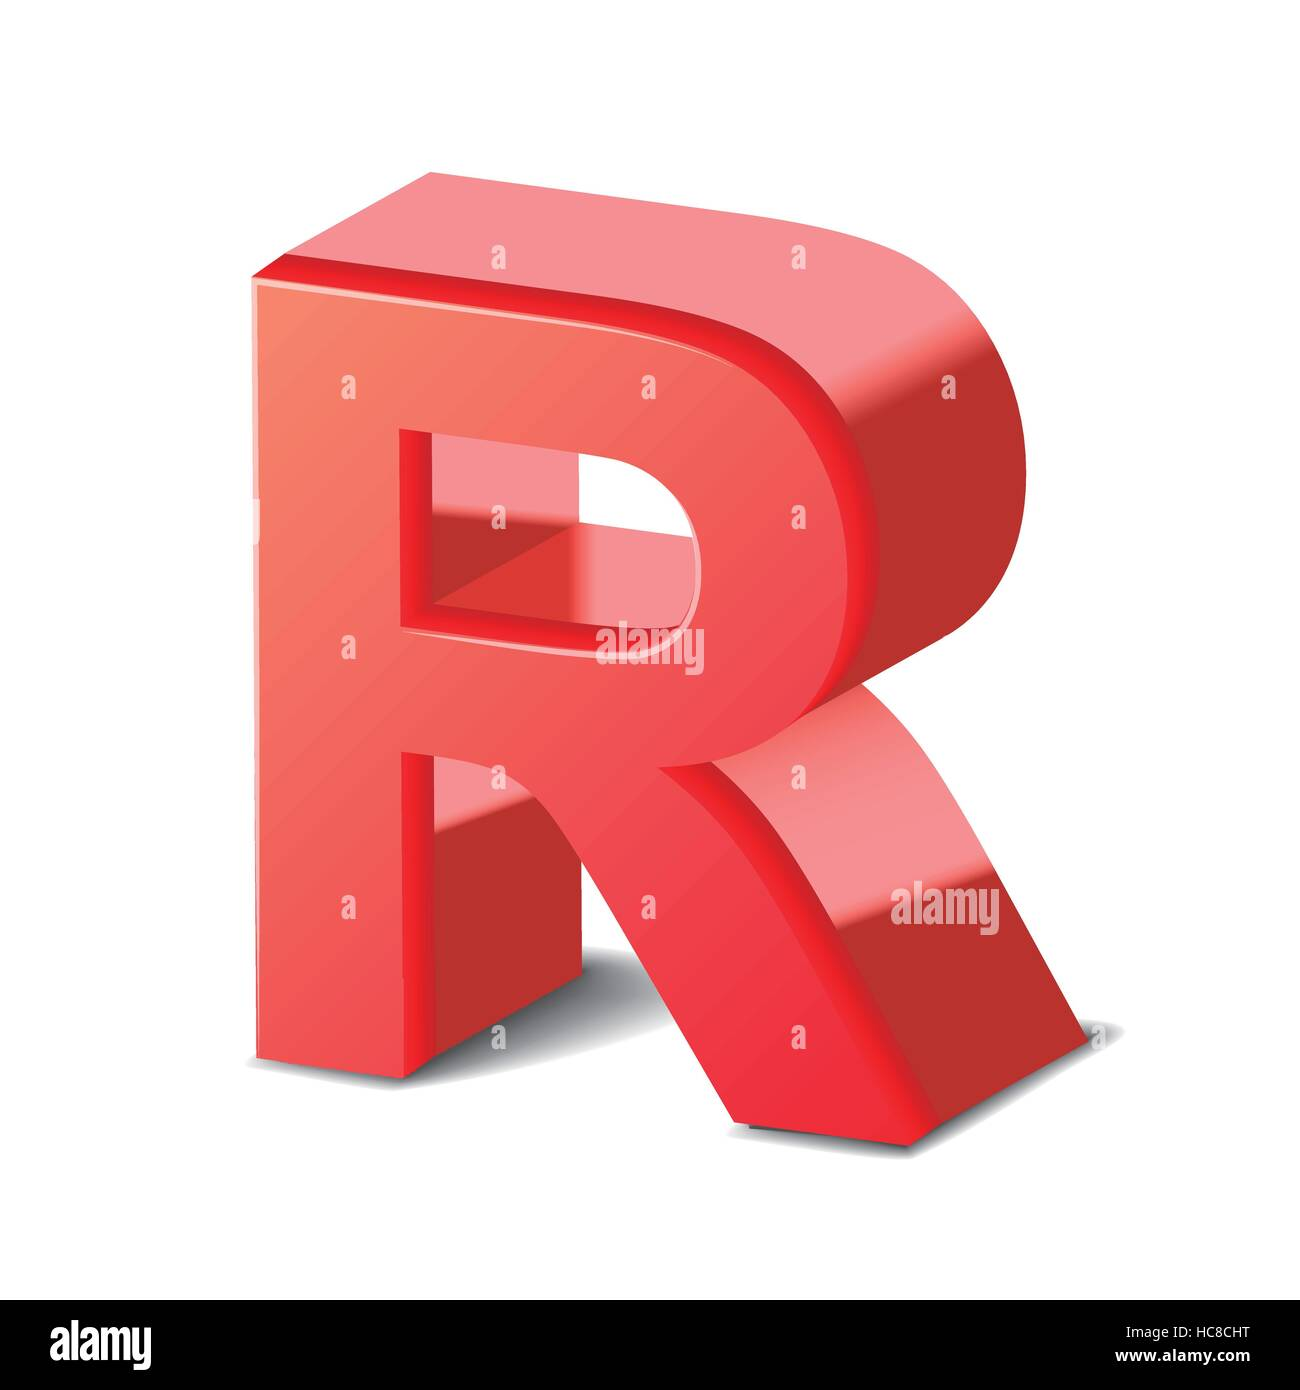 3d red letter r isolated on white background stock vector art 3d red letter r isolated on white background thecheapjerseys Image collections